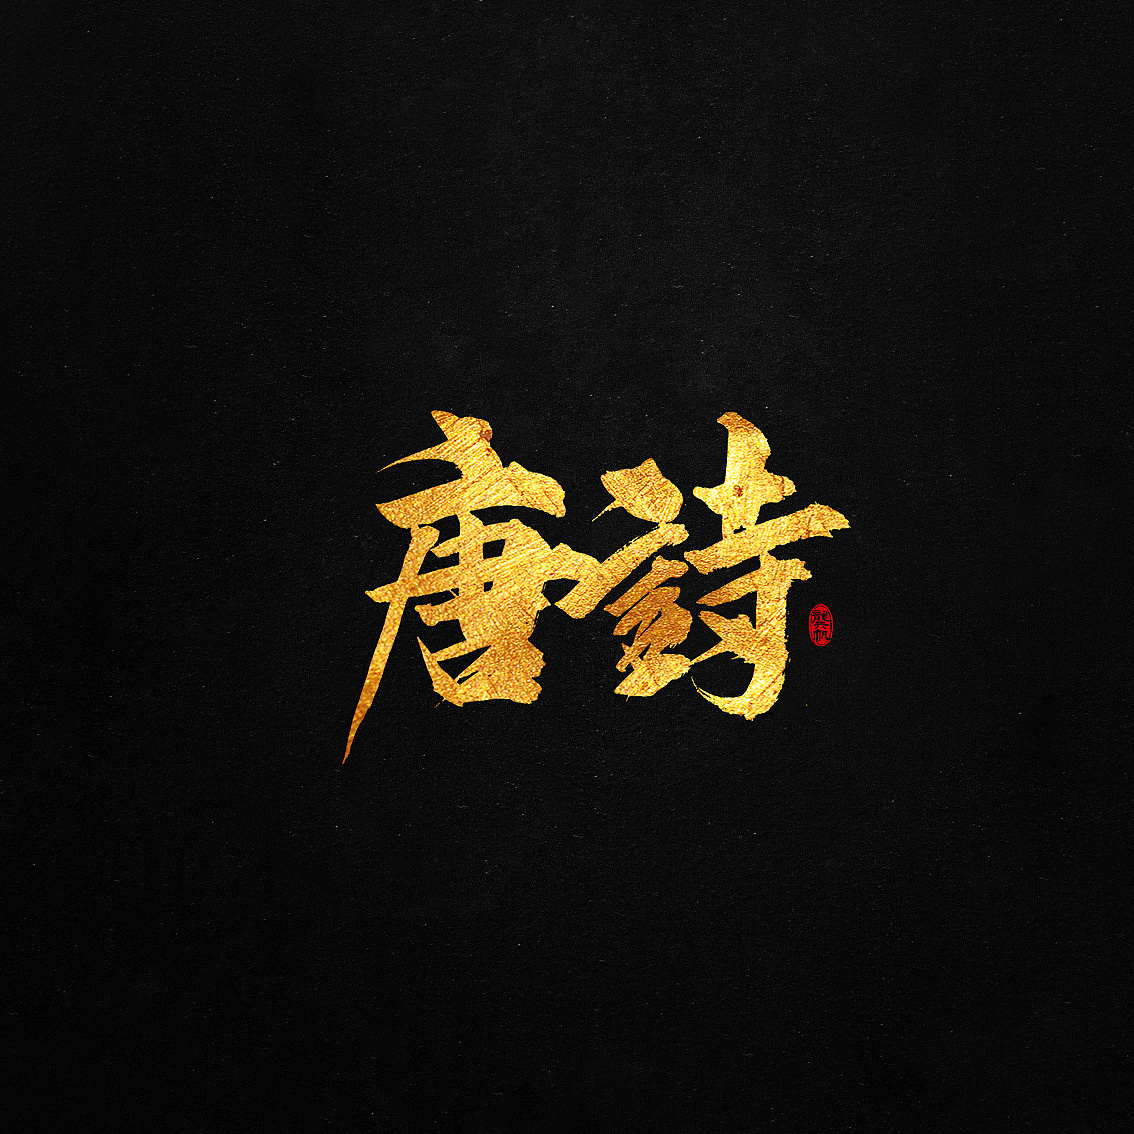 chinesefontdesign.com 2018 03 12 12 55 07 351629 12P Chinese traditional calligraphy brush calligraphy font style appreciation #105